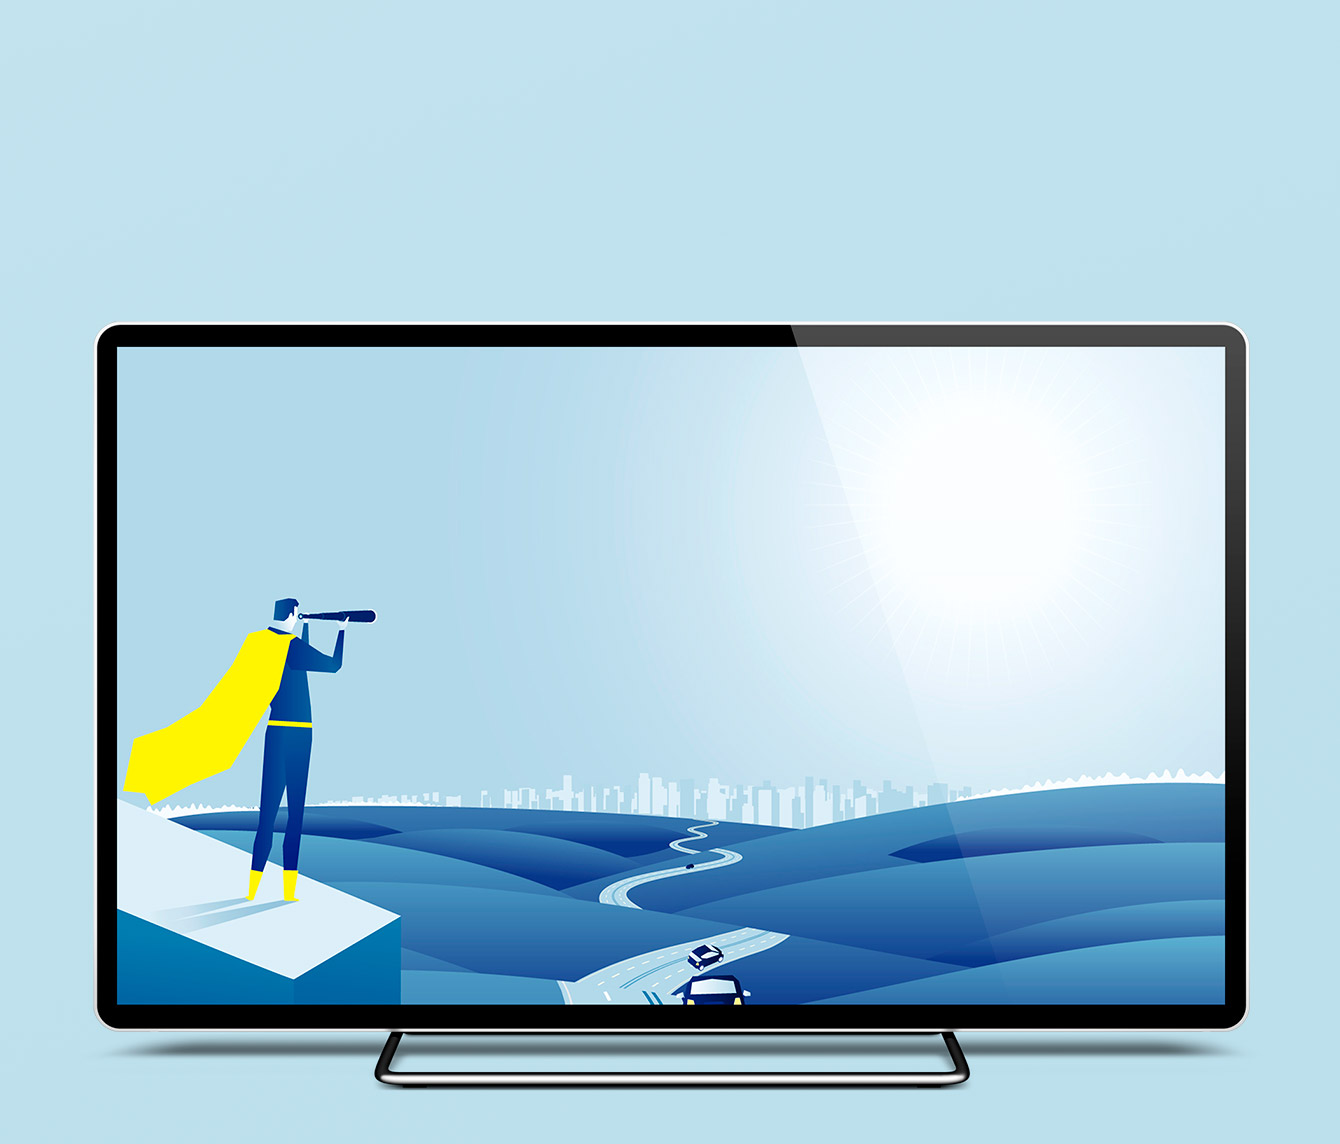 Design of the video displayed on a screen